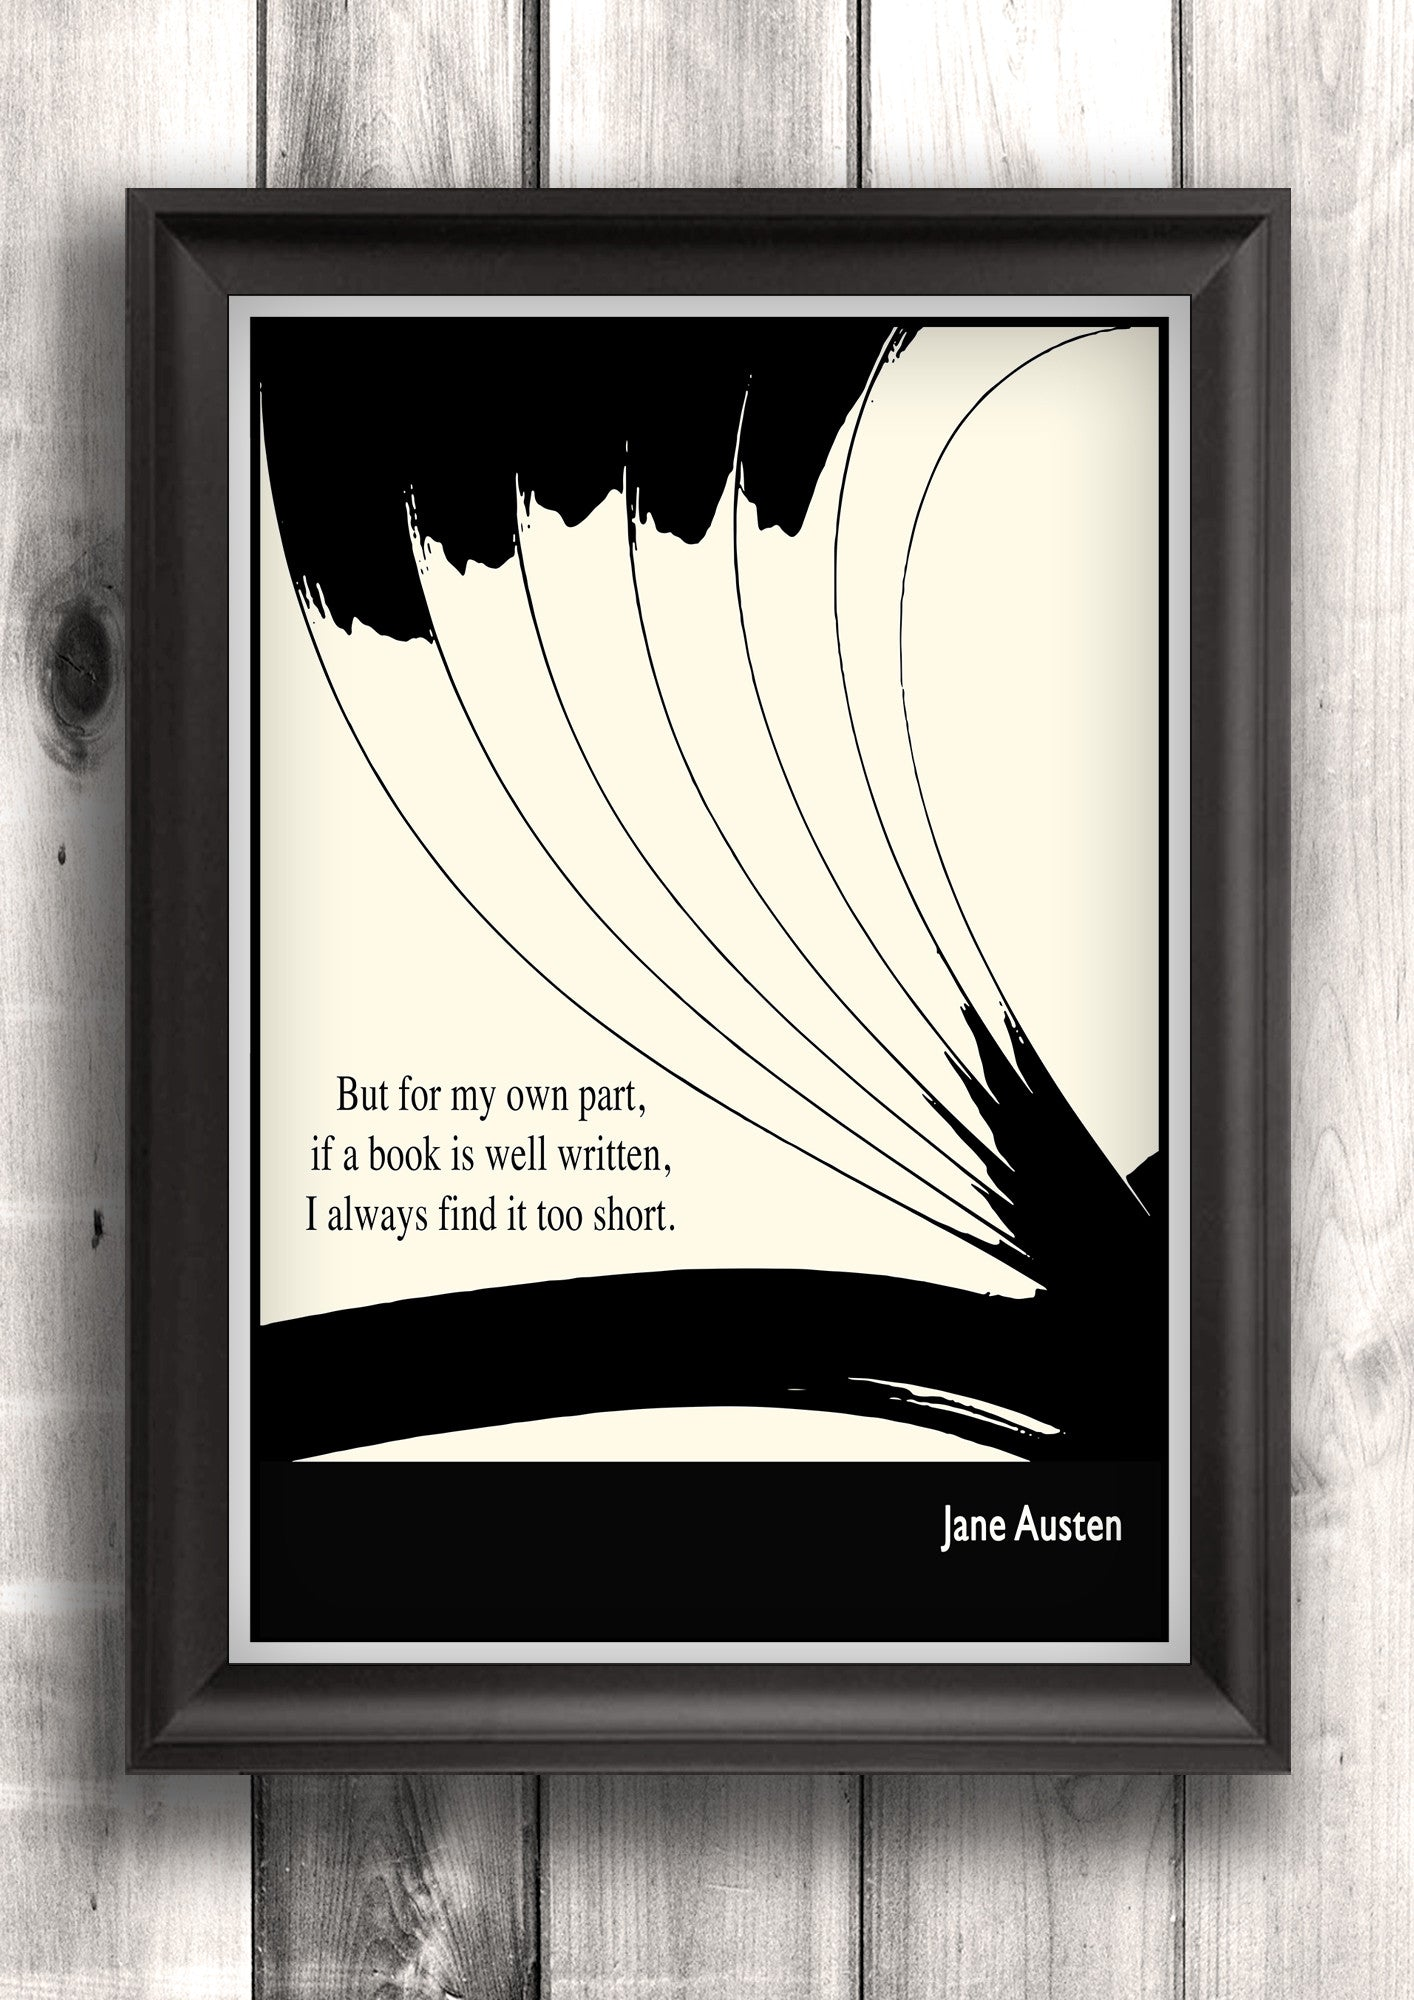 Literary Art - Jane Austen Quote, Art Poster, Minimalist Black and White - Fine art letterpress poster